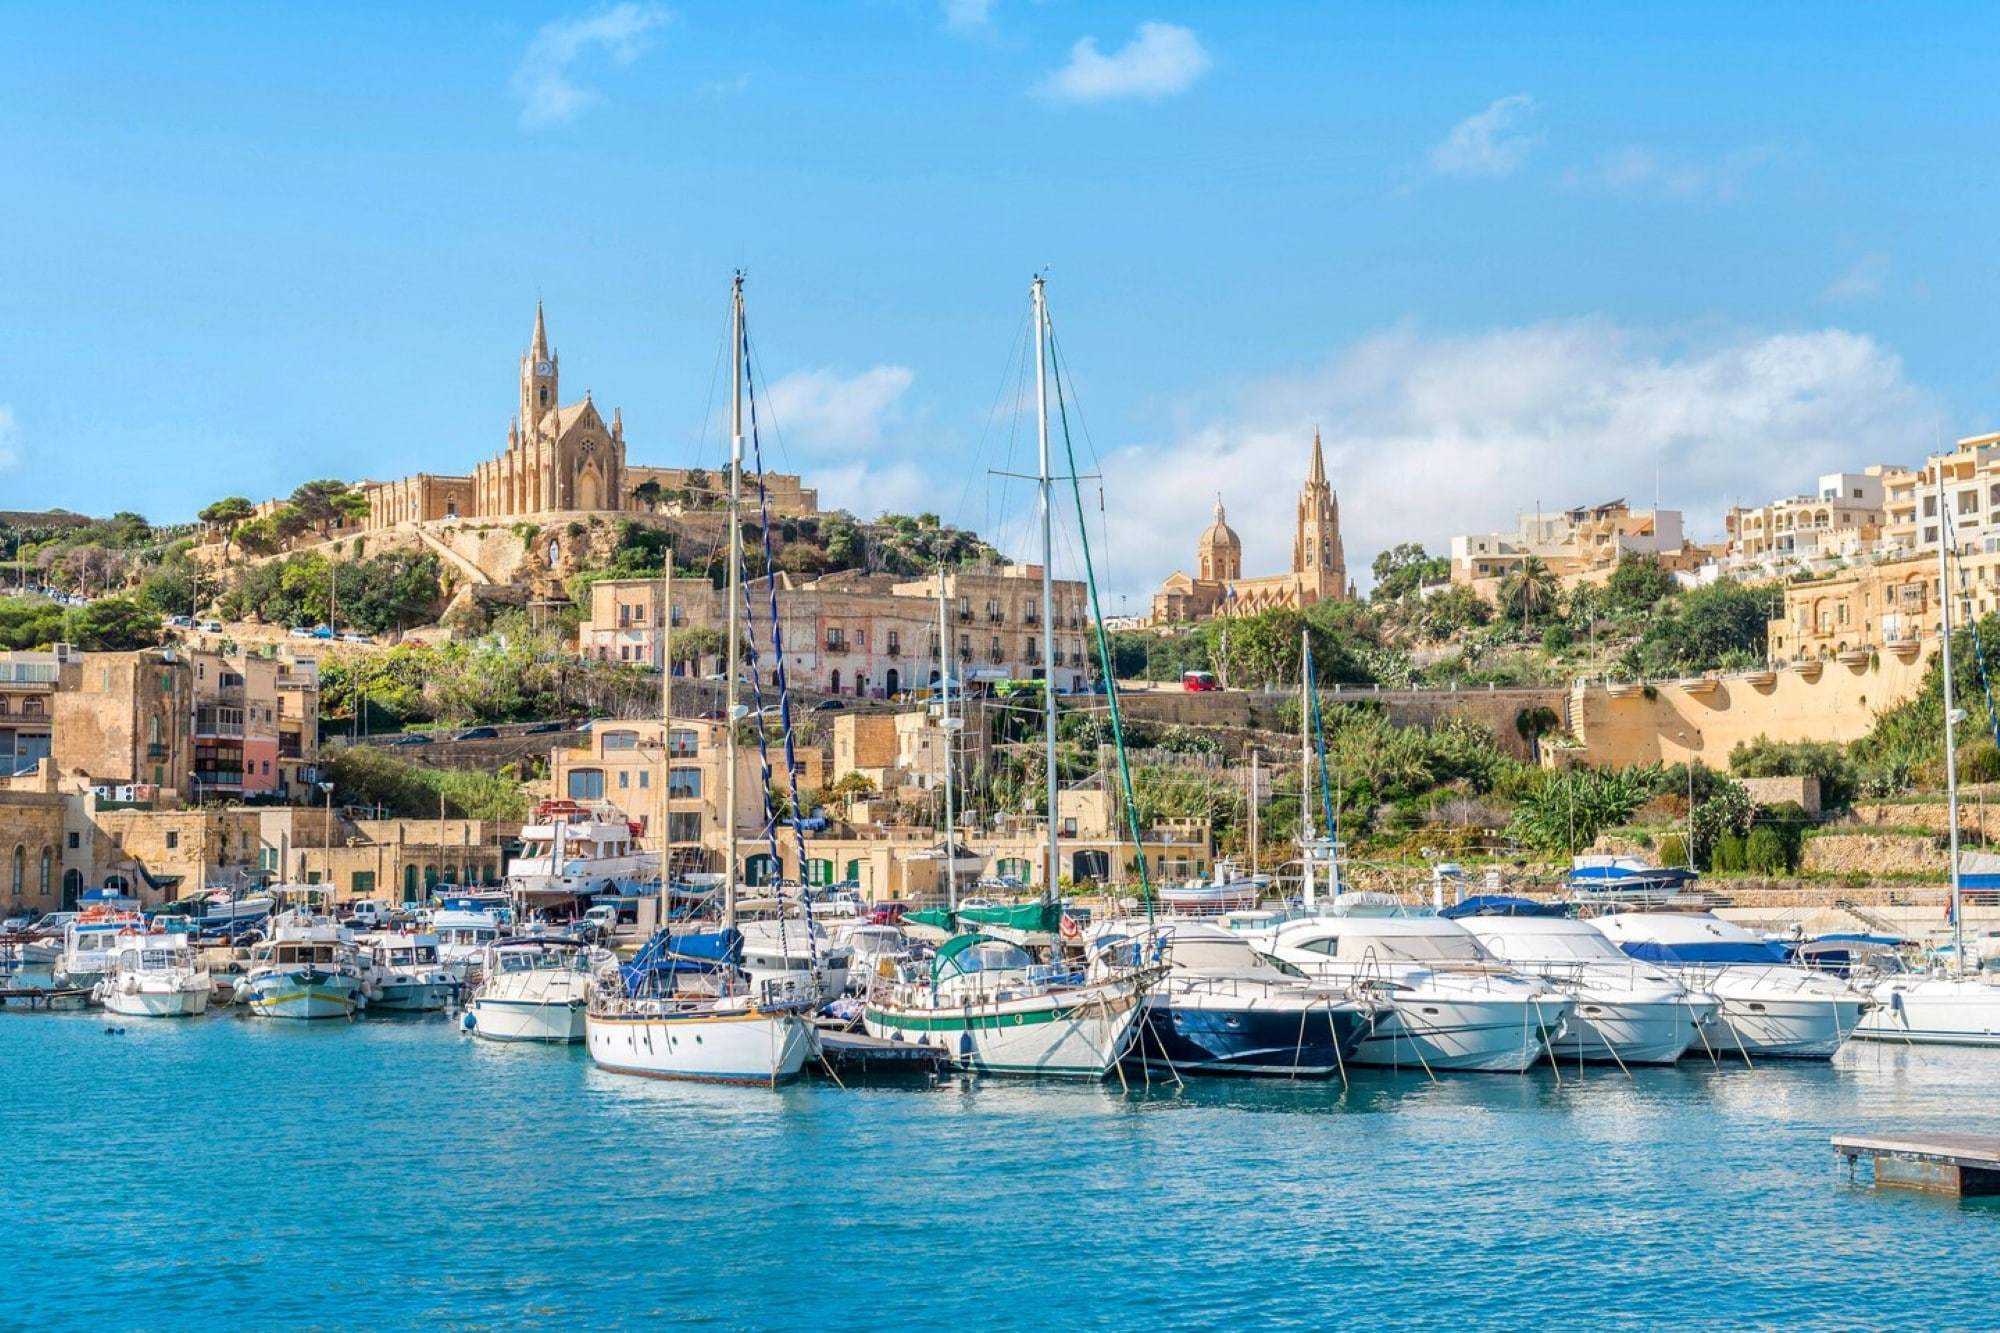 Mgarr Harbour in Gozo